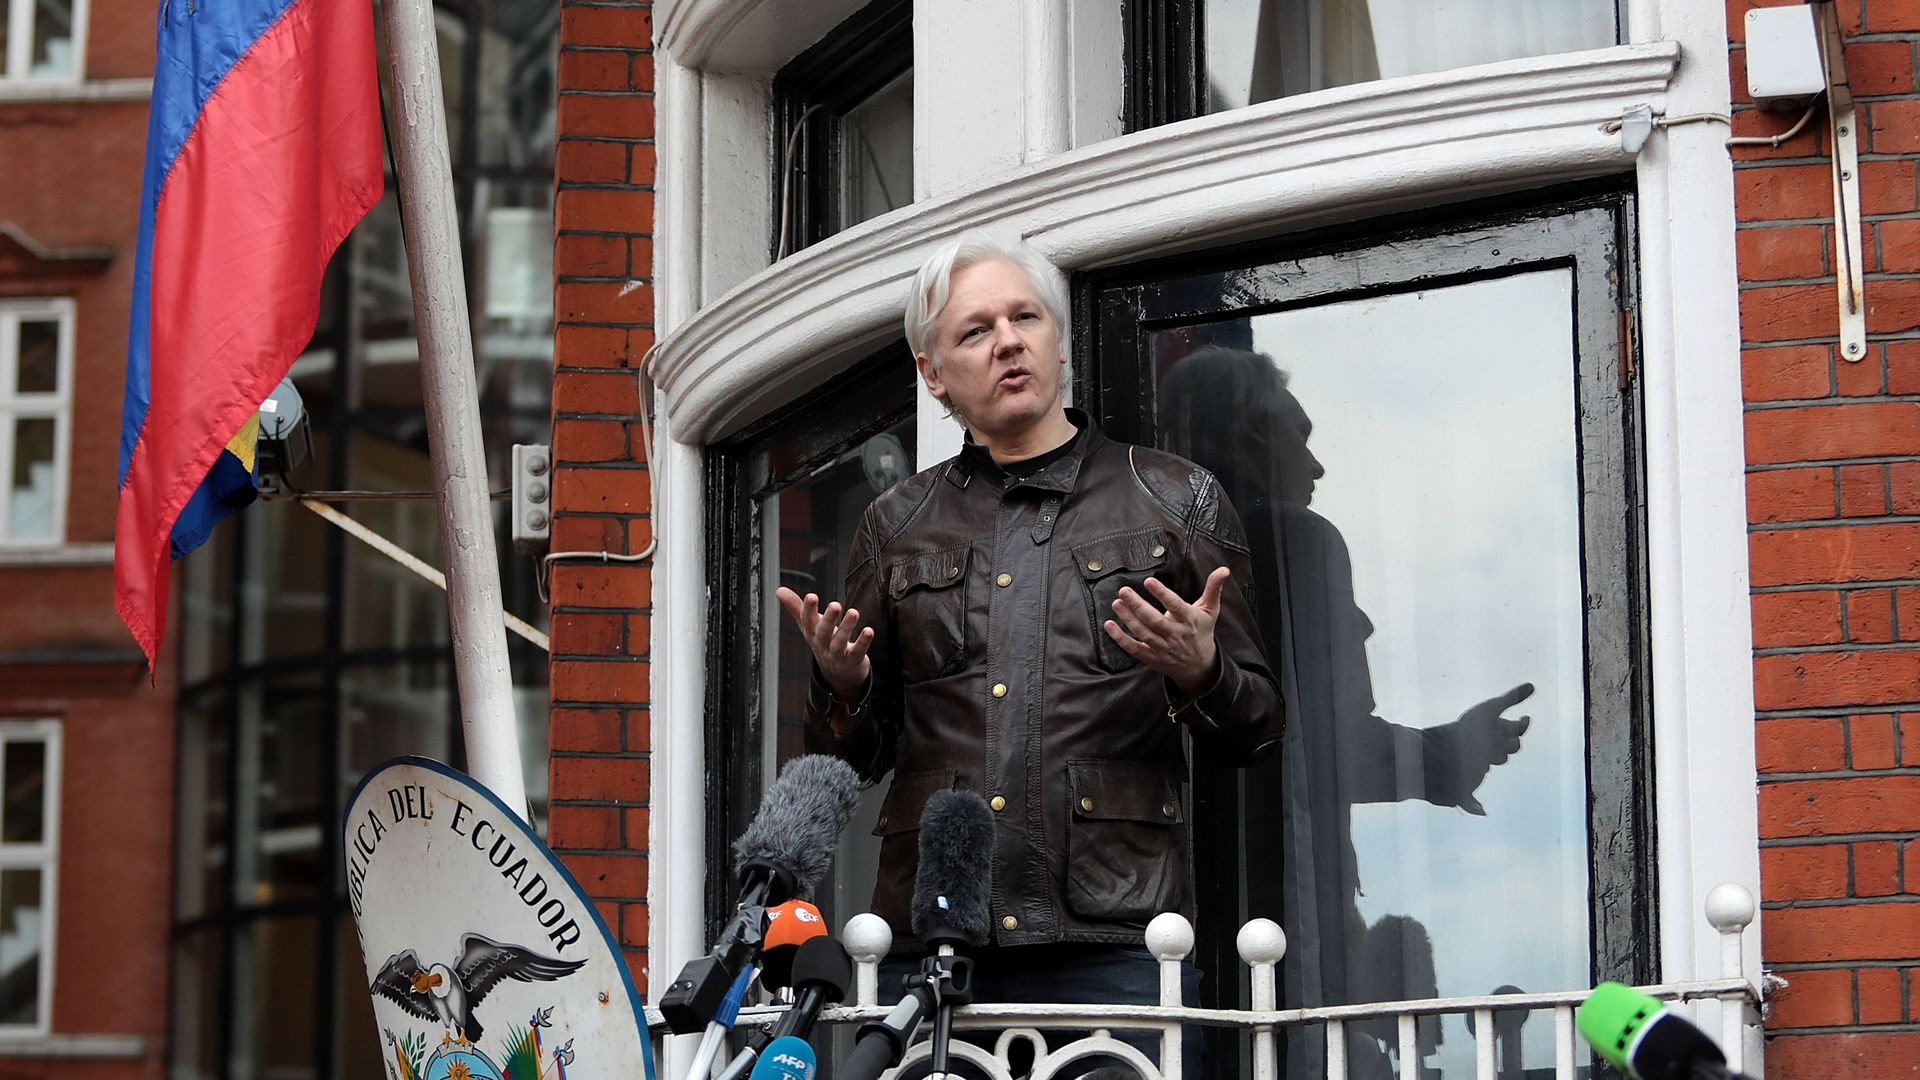 This is Julian Assange